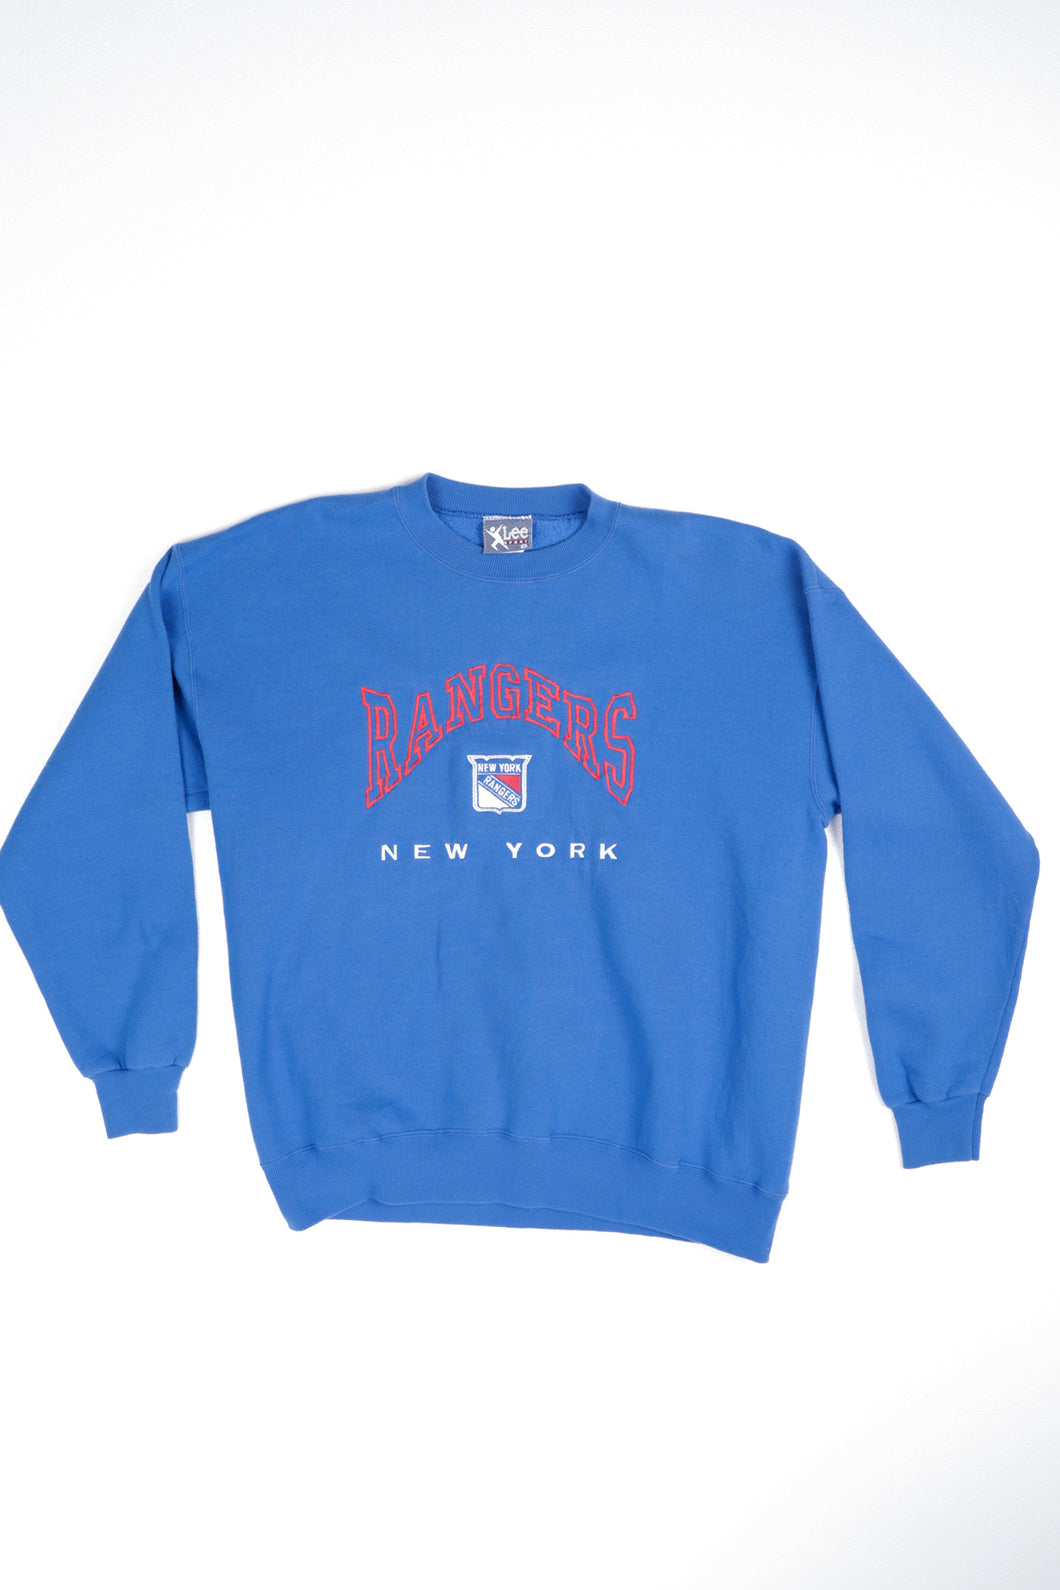 Rangers Sweater